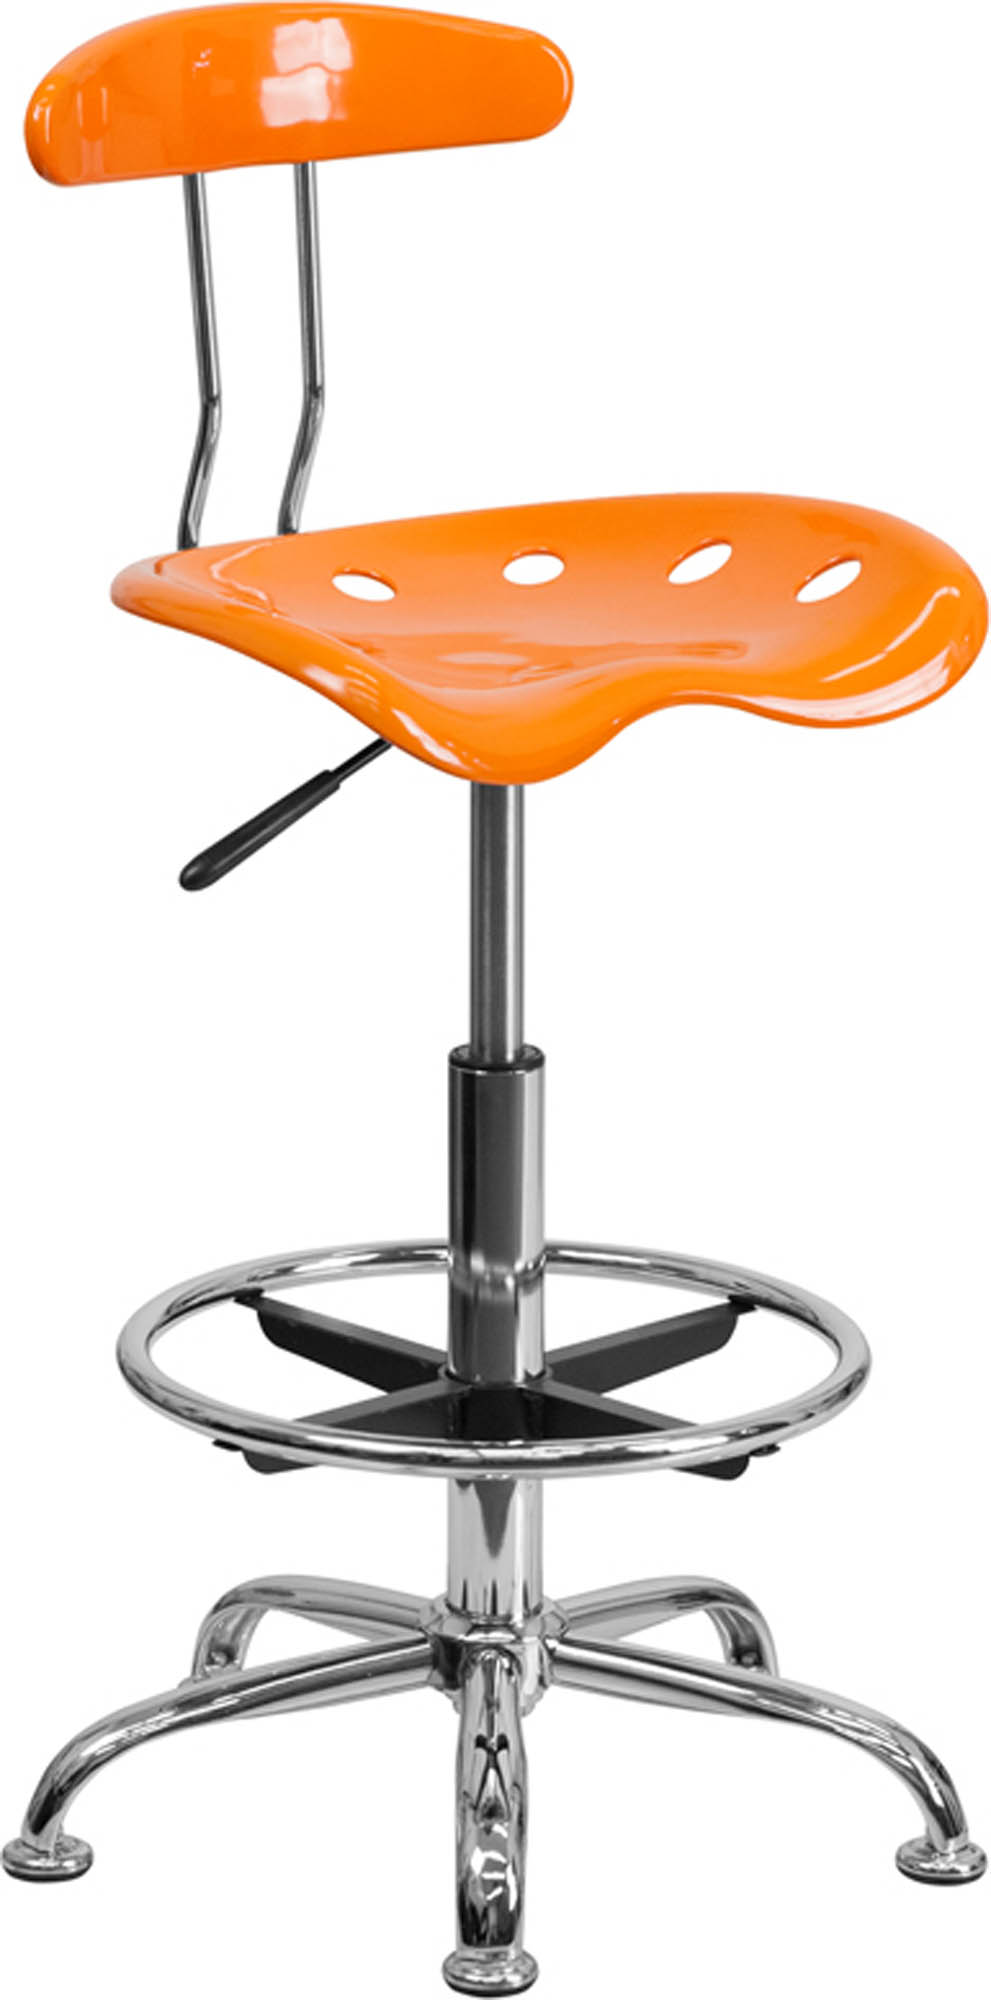 Offex LF-215-ORANGEYELLOW-GG Vibrant Orange and Chrome Drafting Stool with Tractor Seat